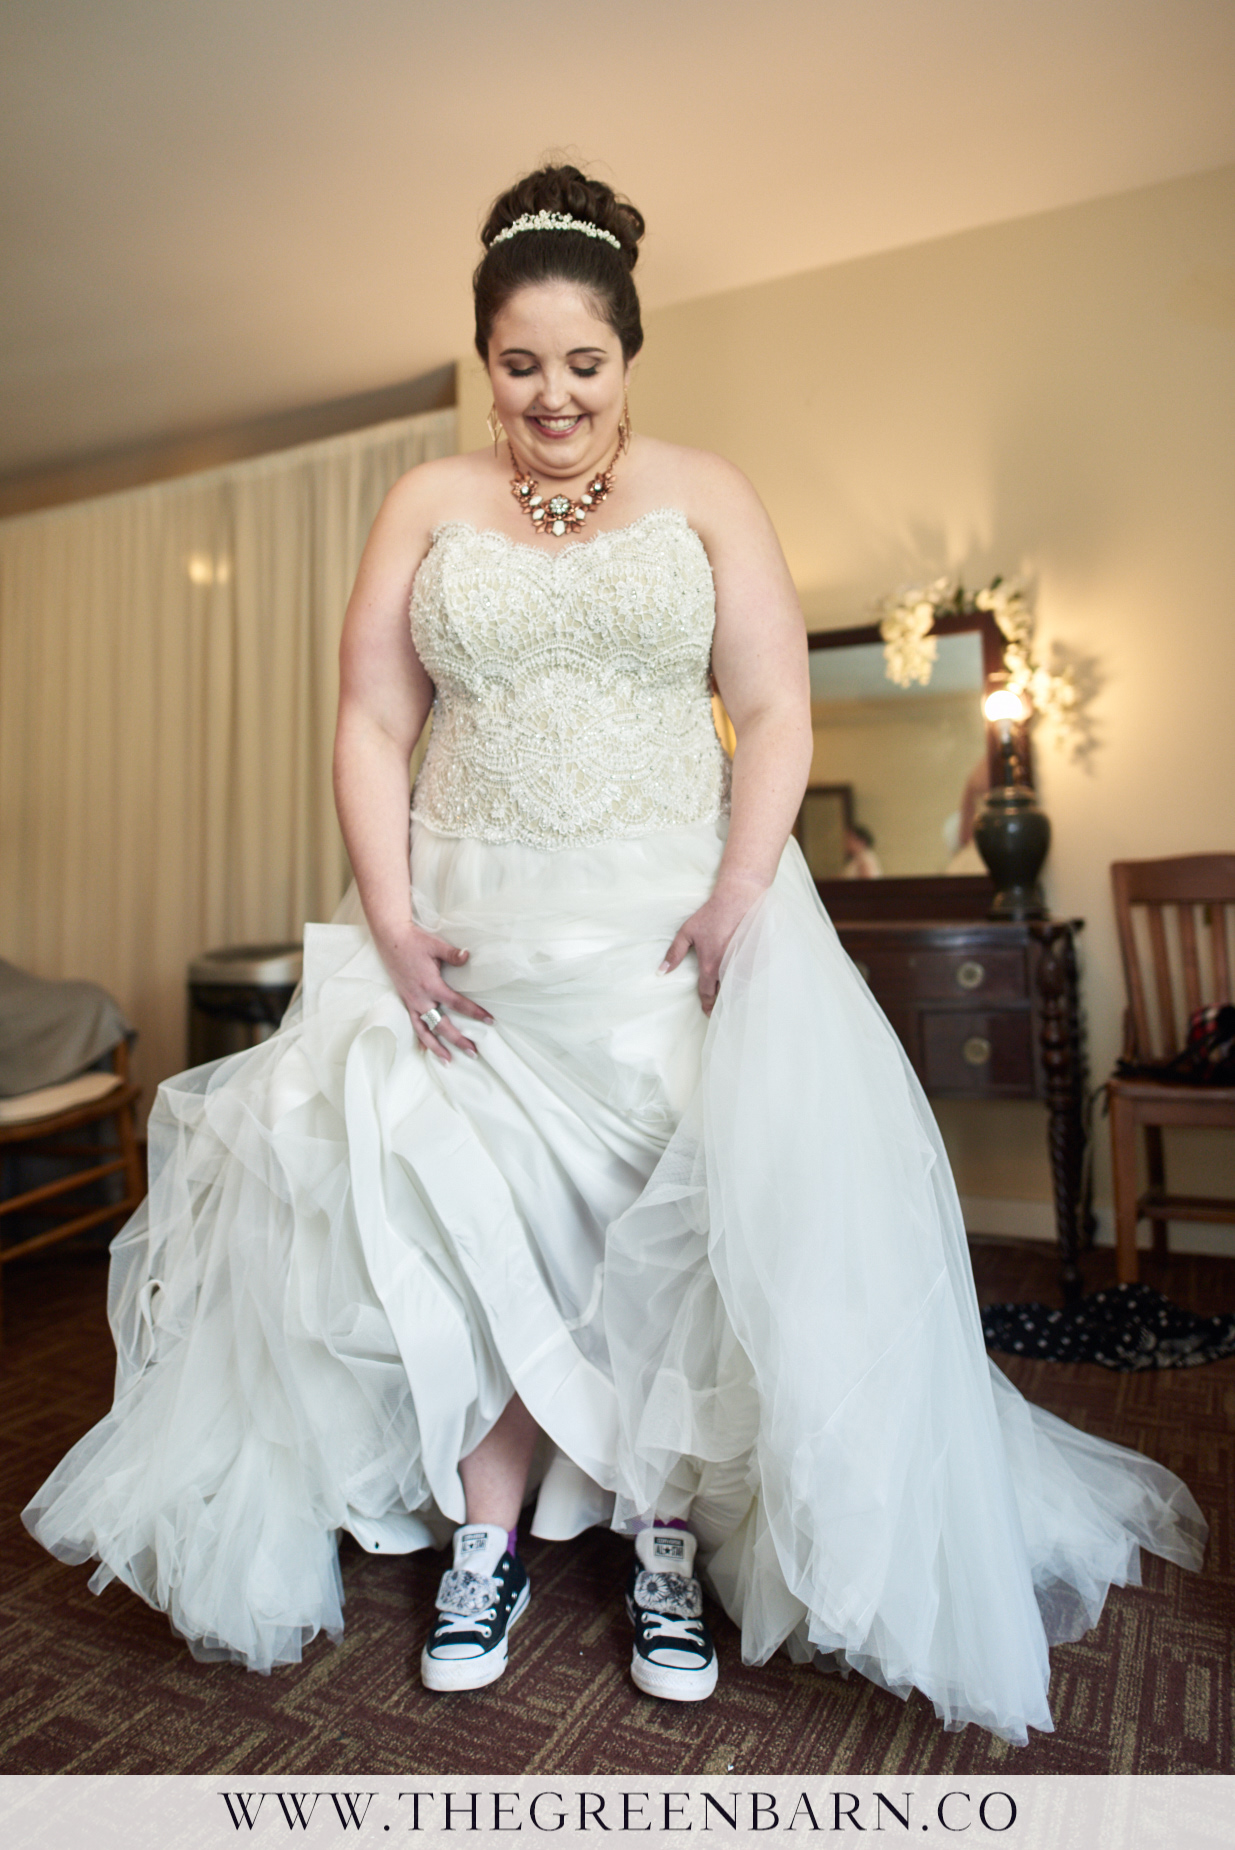 Bride Showing Off Her Converse All-Star's Wedding Shoes Photo By Cate Bligh